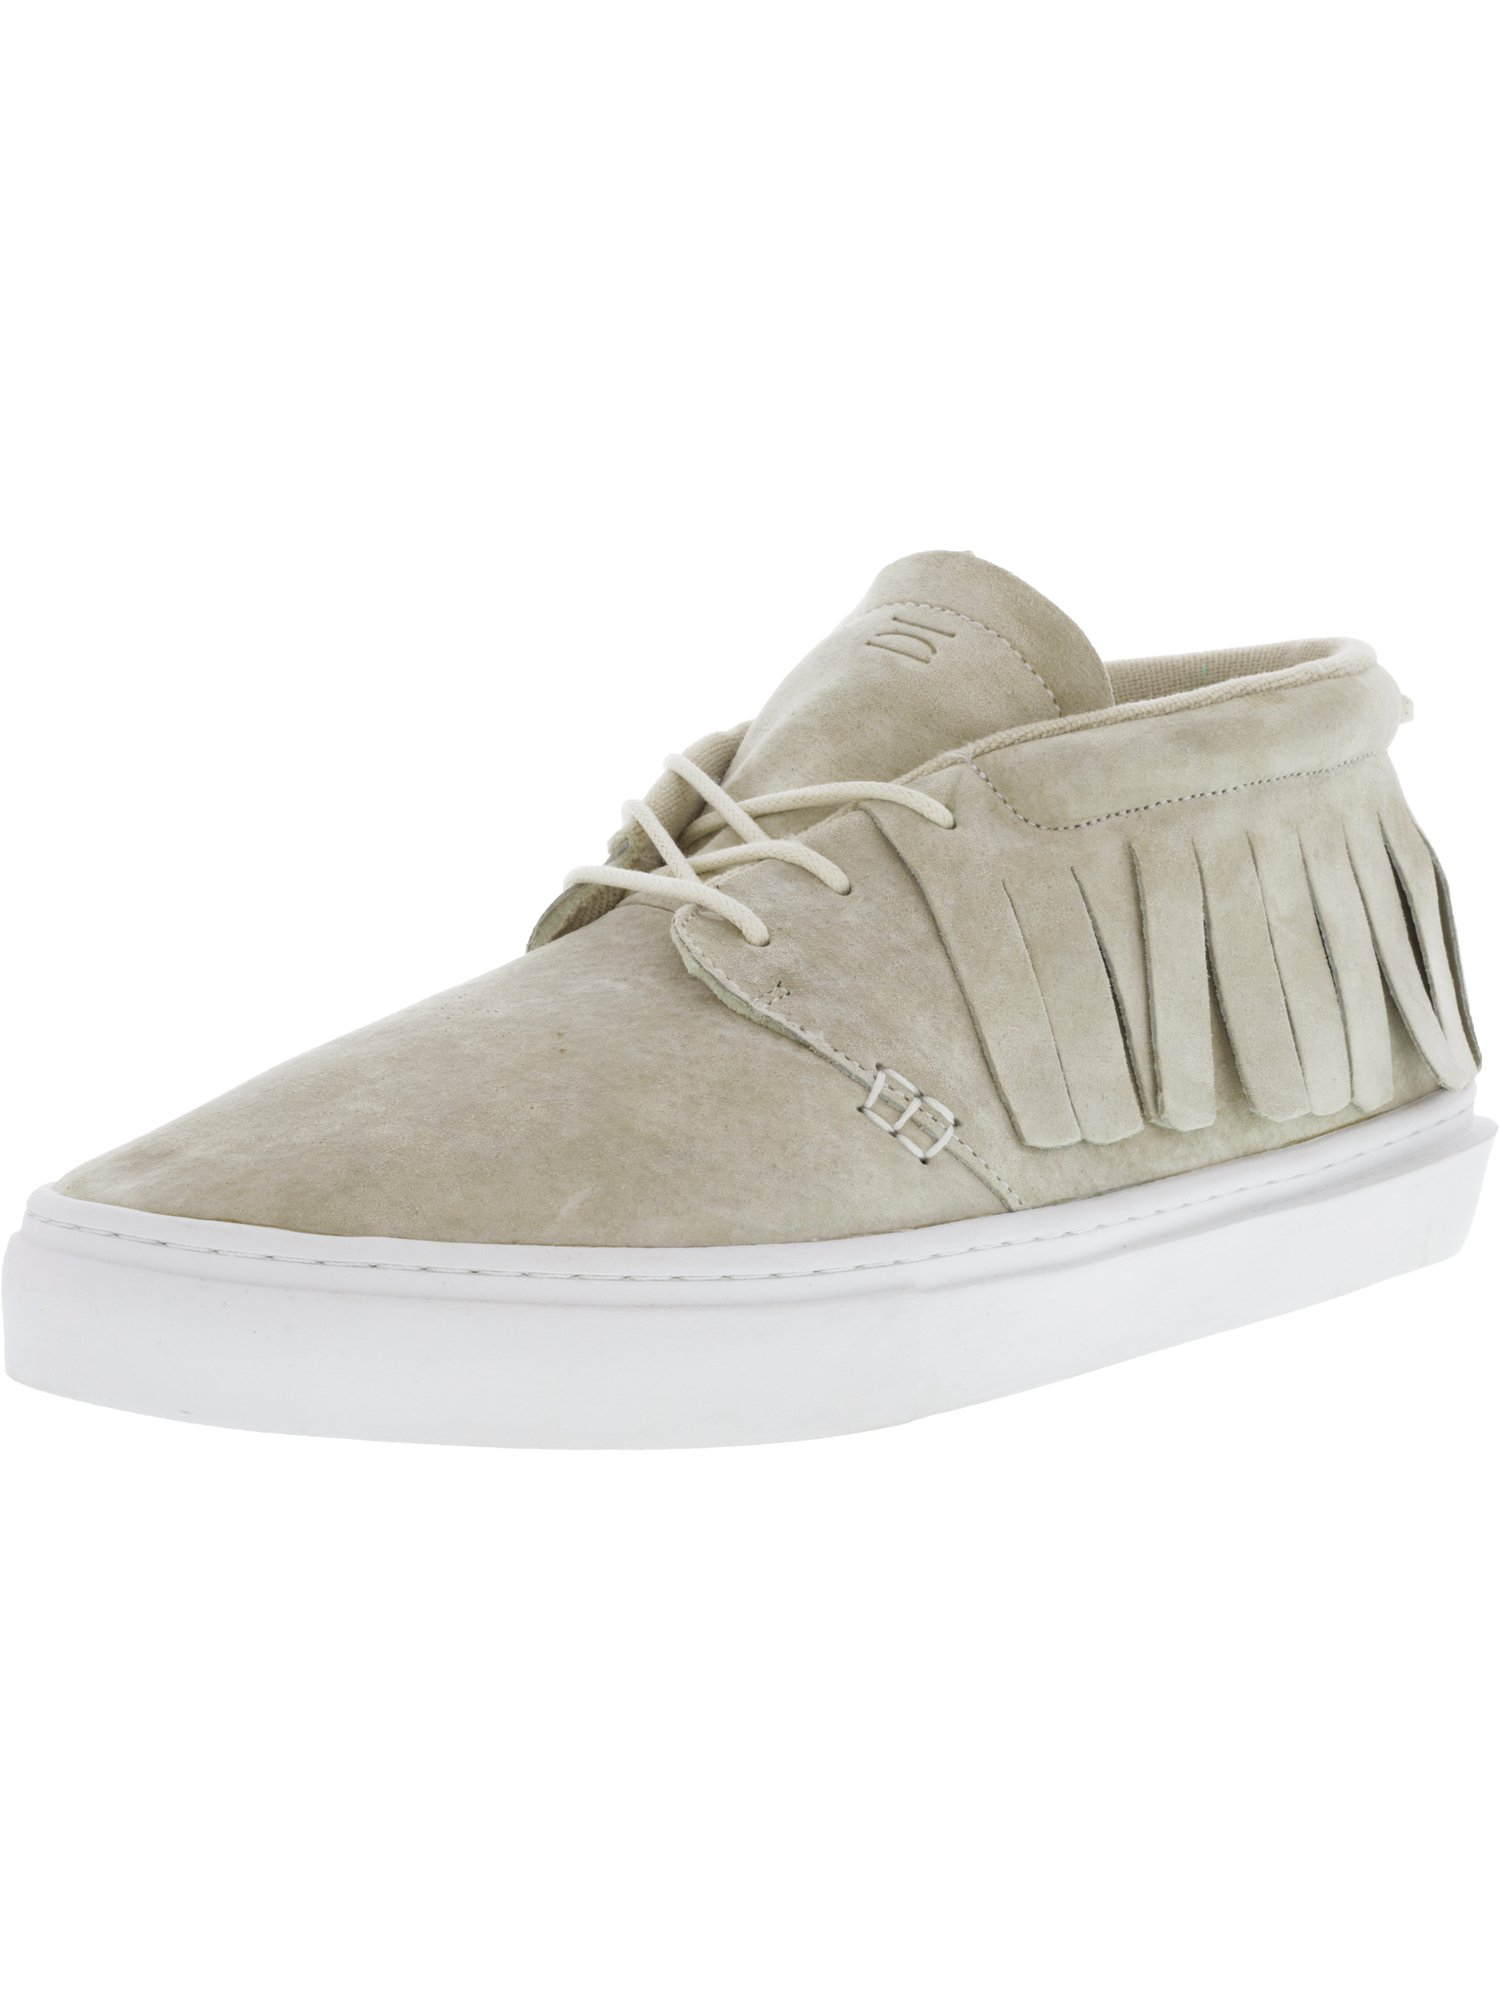 Clear Weather Men's One-O-One Gream Mid-Top Leather Fashion Sneaker - 12M